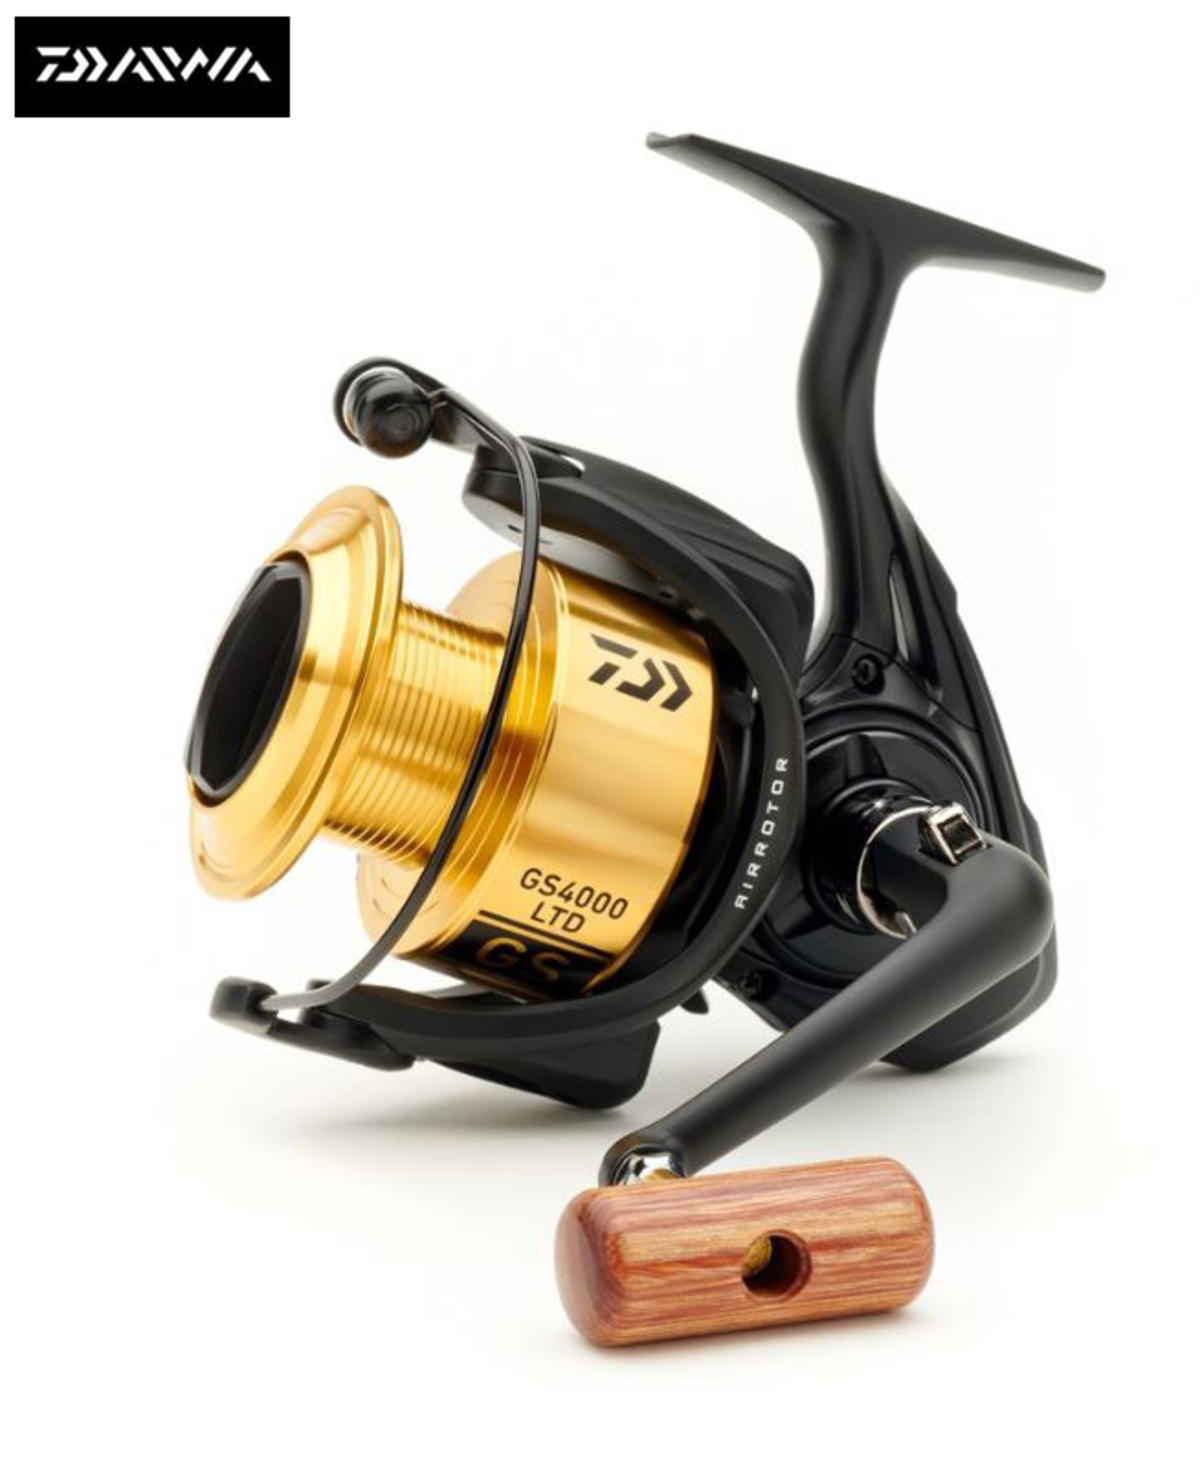 New Daiwa GS 3000 LTD Fishing Reel - Model No. 17GS3000LTD